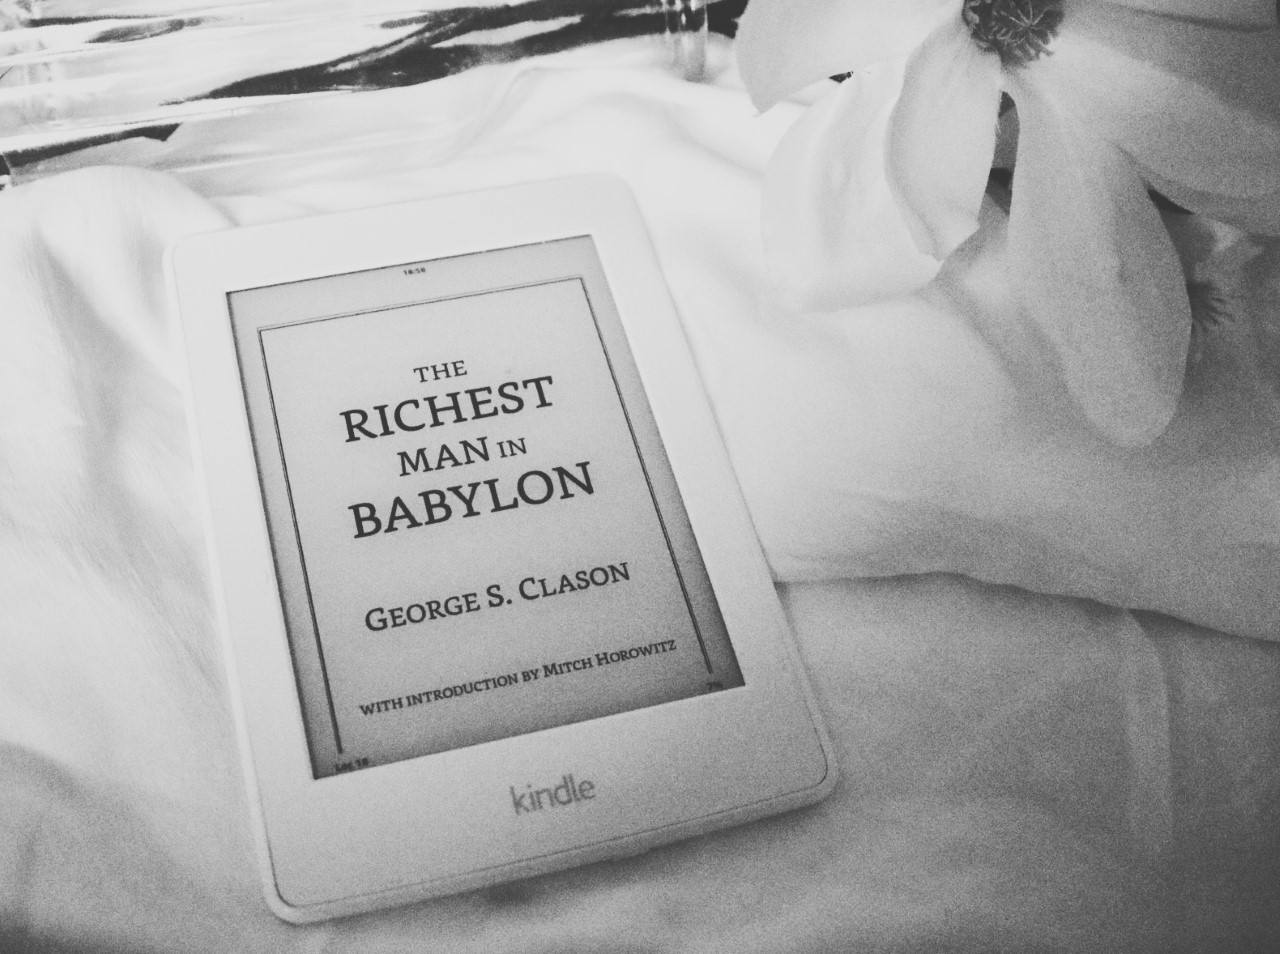 7 Financial lessons from The Richest Man in Babylon by George S. Clason